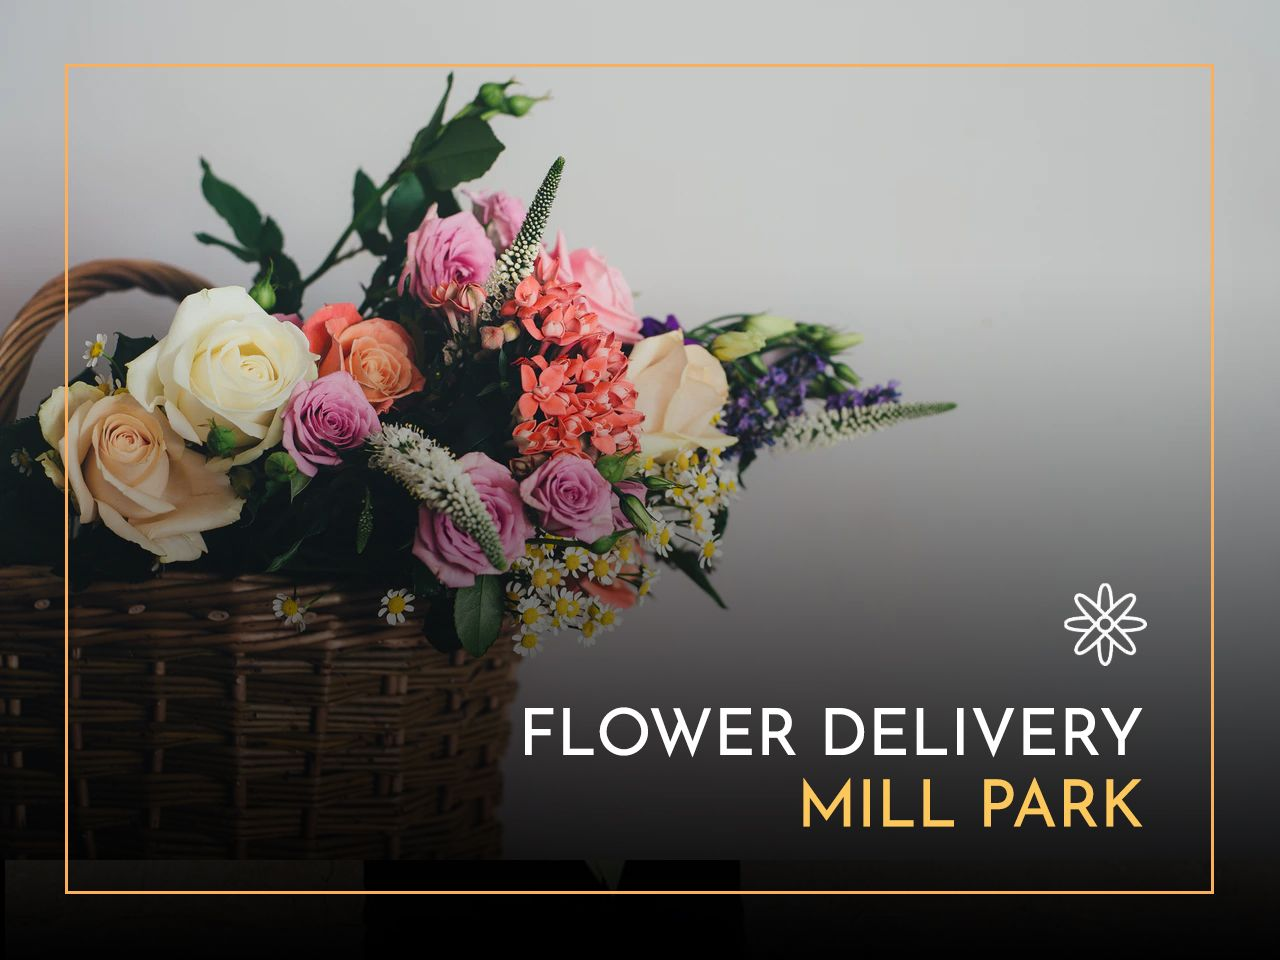 Flower Delivery Mill Park